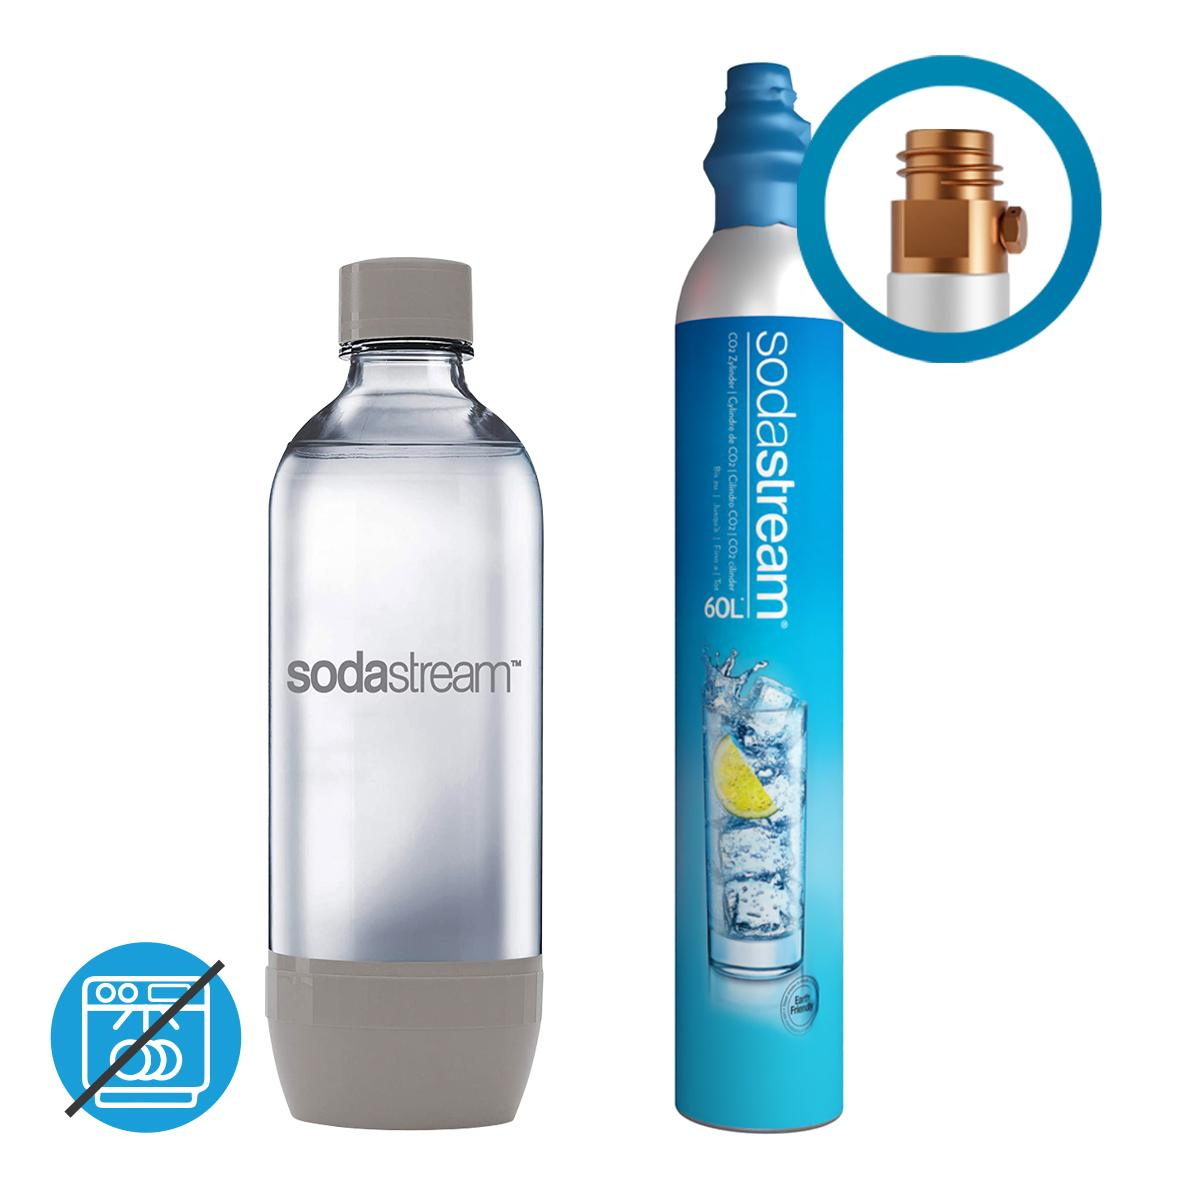 SodaStream - CO2 cilinder